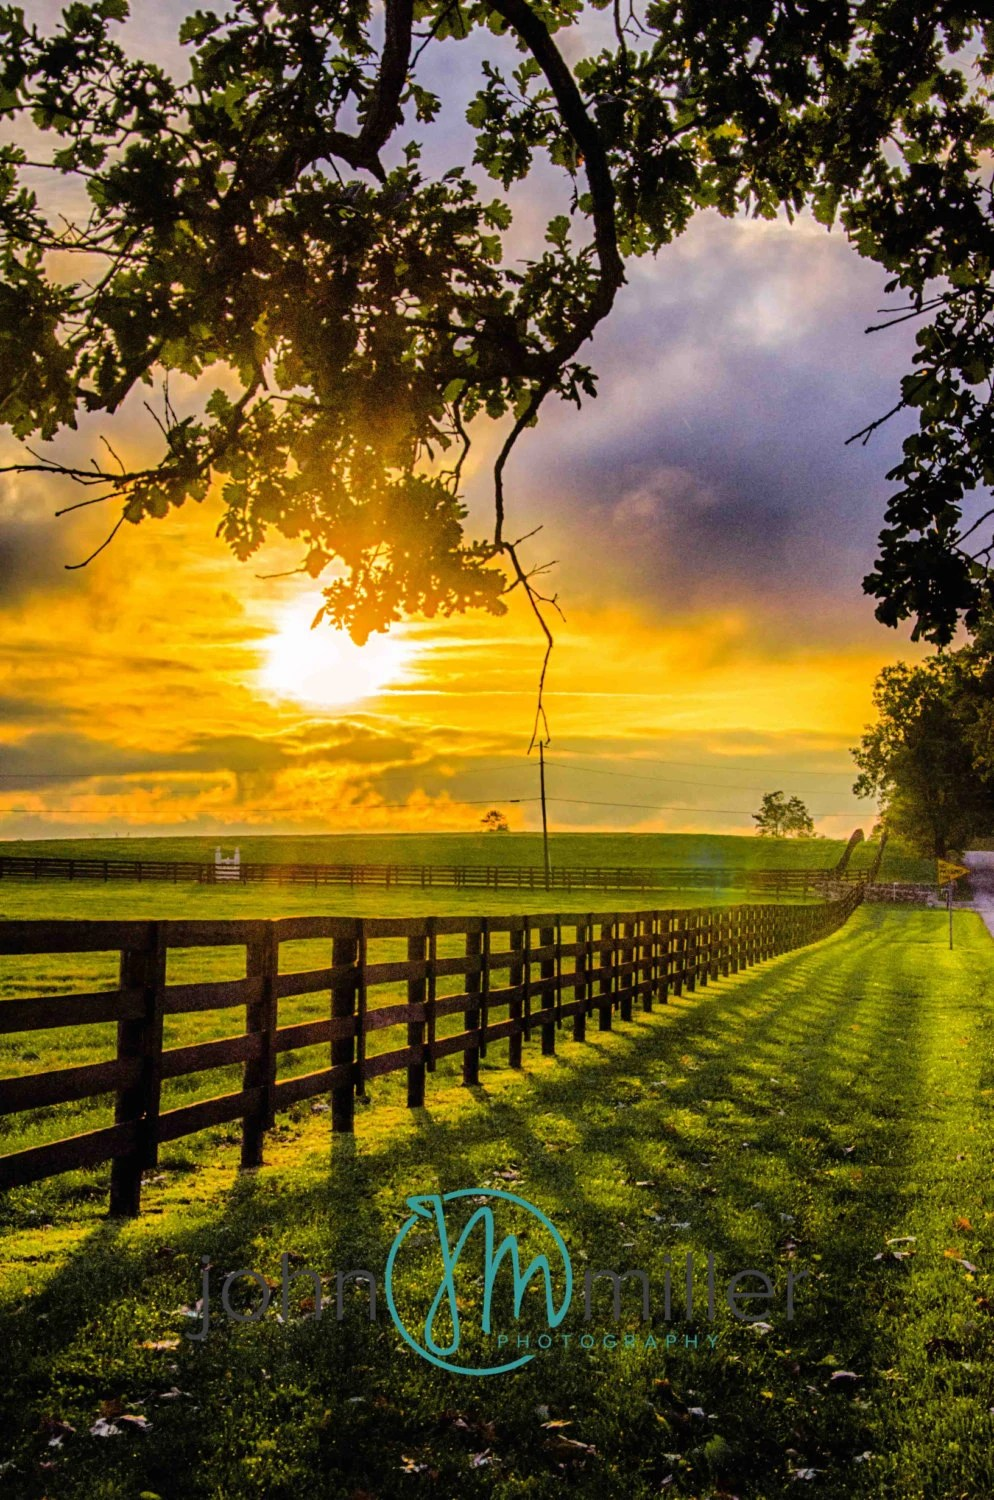 Fall Paintings Wallpaper Country Sunrise Farm Fence Rural Shadow Plank Fence